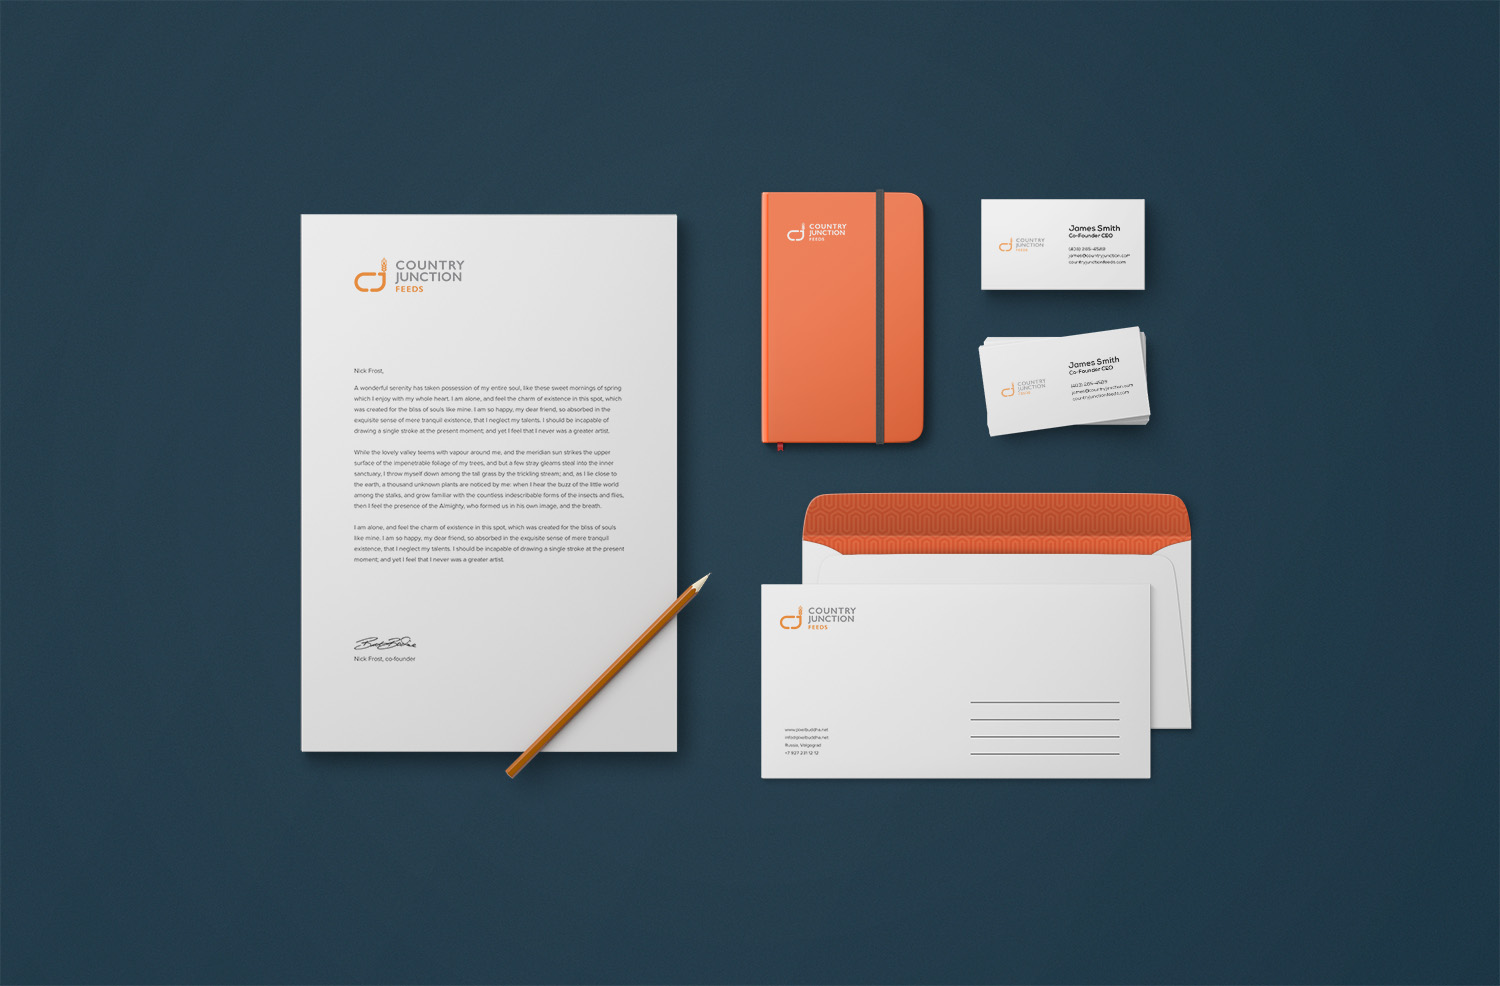 country-junction-brand-stationery-morad.jpg